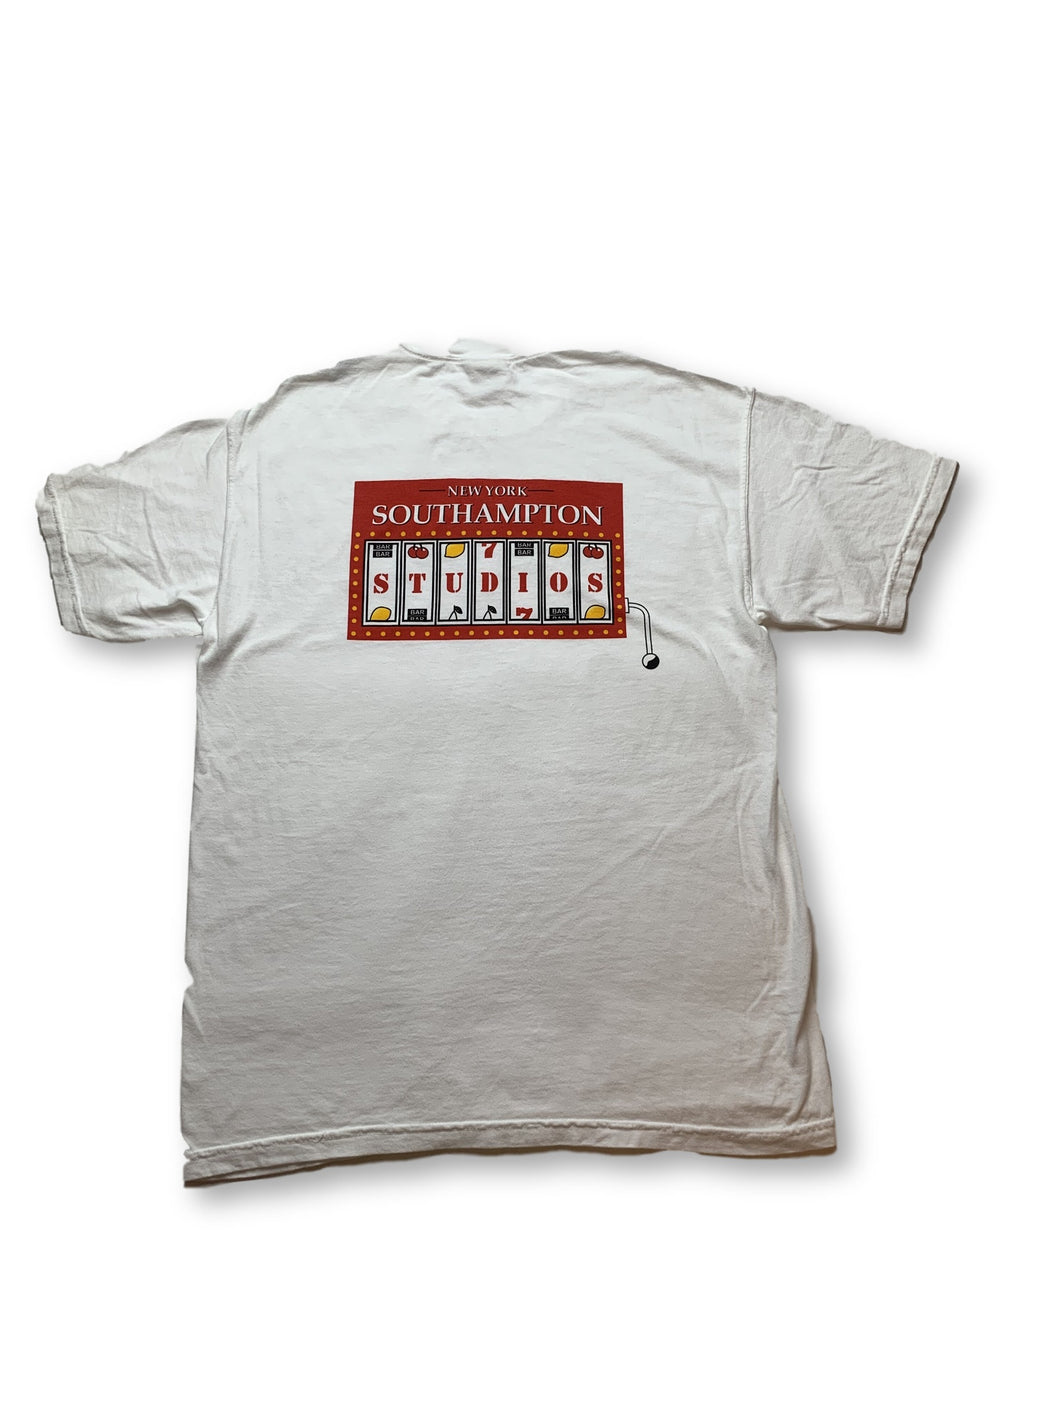 Slot Machine Tee (White)